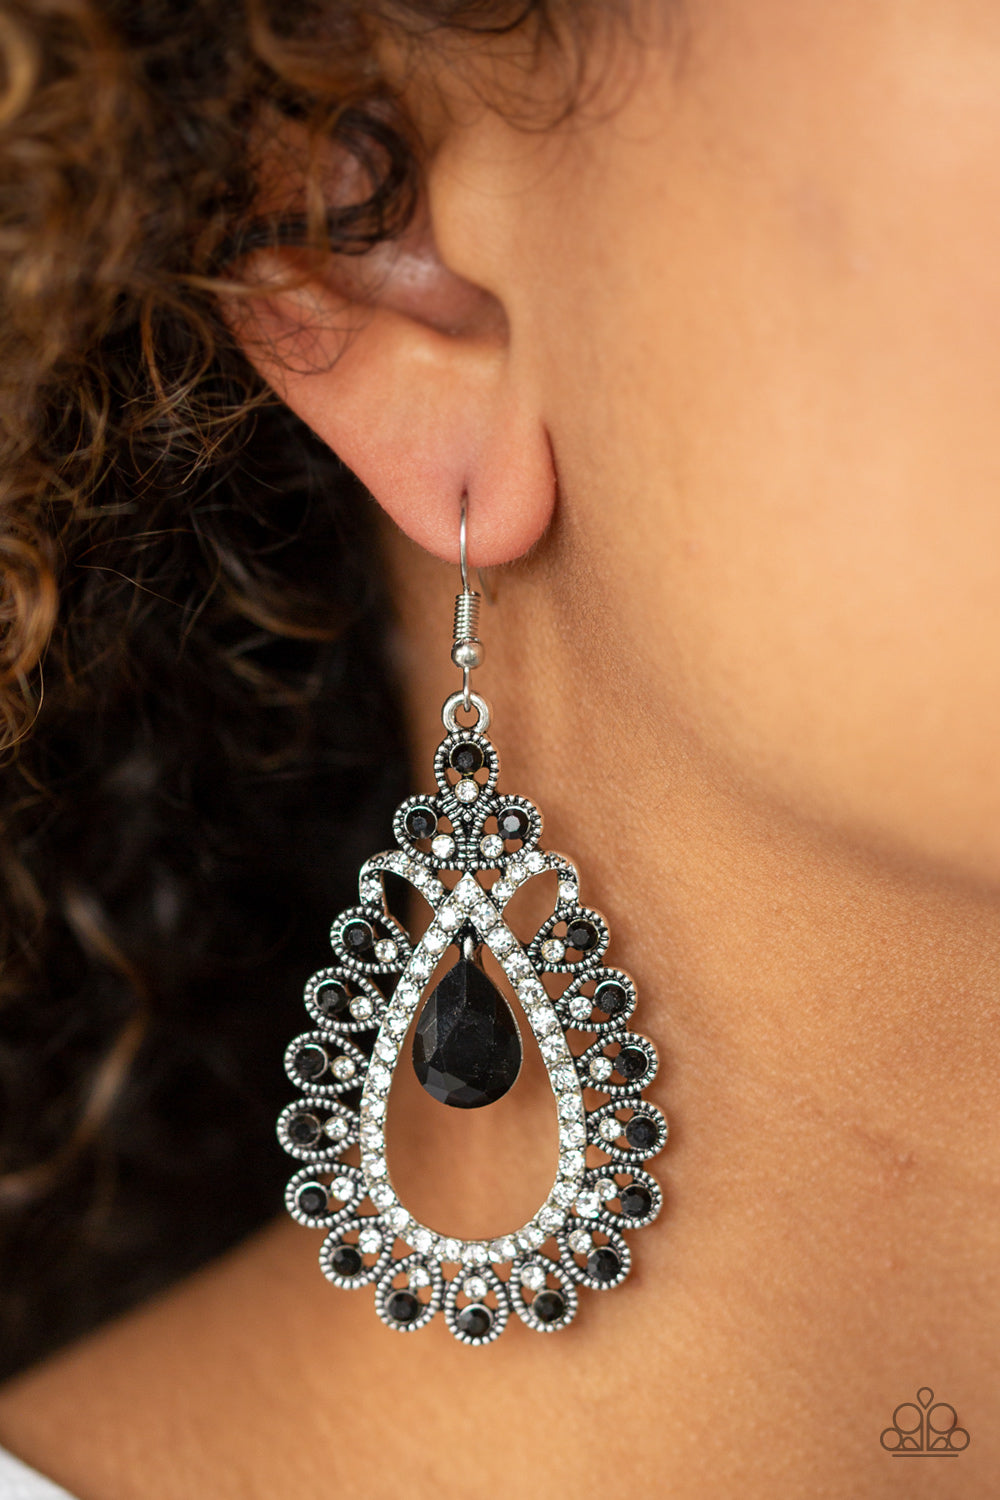 All About Business - Black Earrings - SavvyChicksJewelry